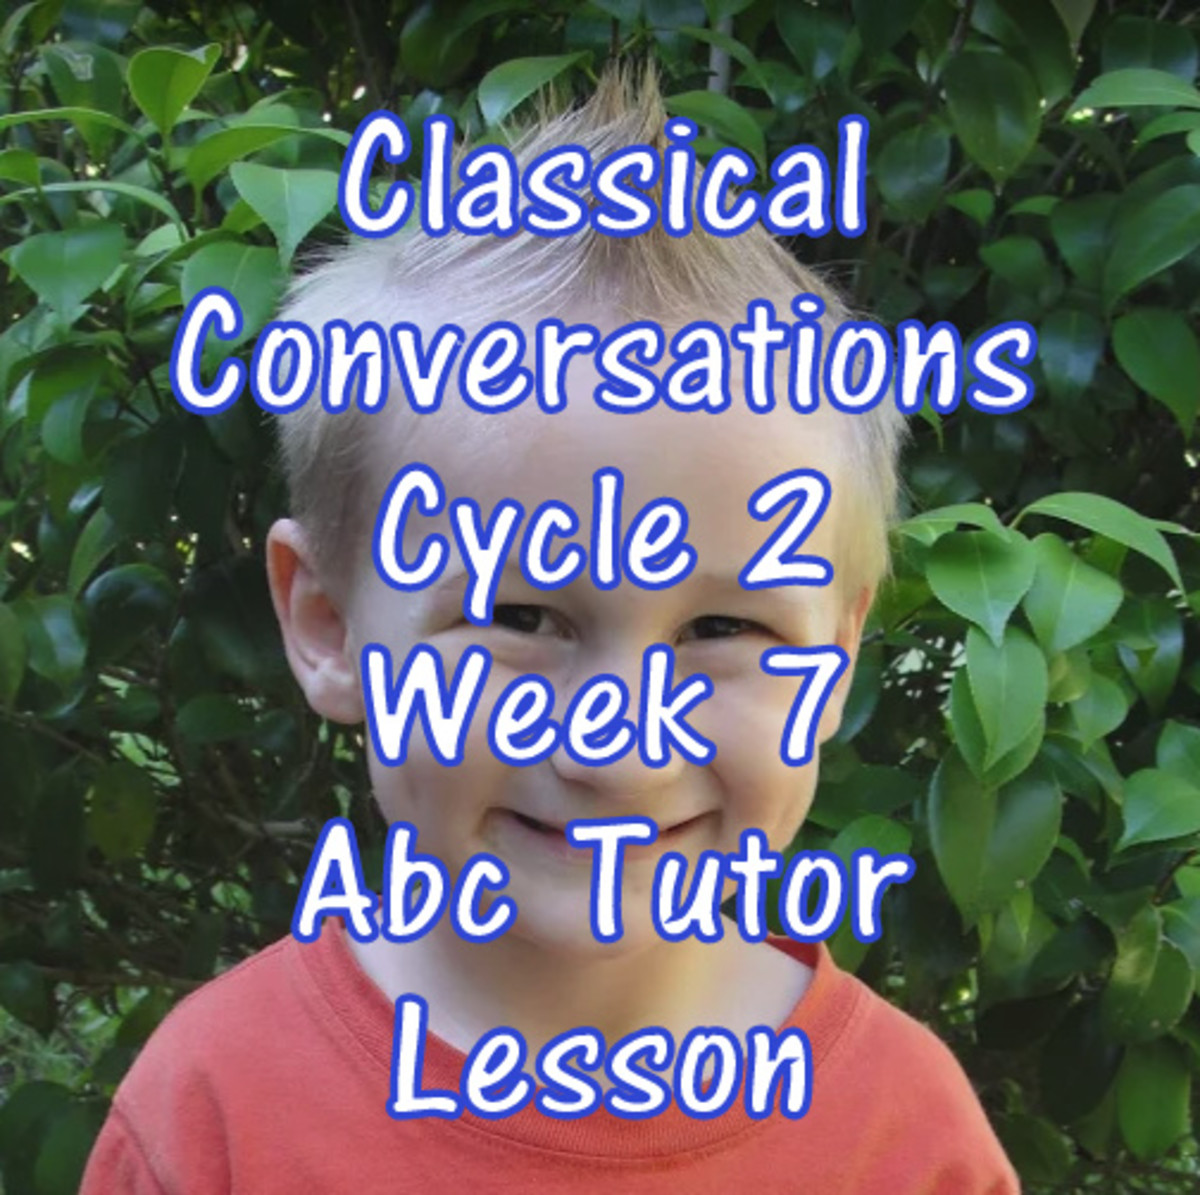 CC Cycle 2 Week 7 Lesson for Abecedarian Tutors